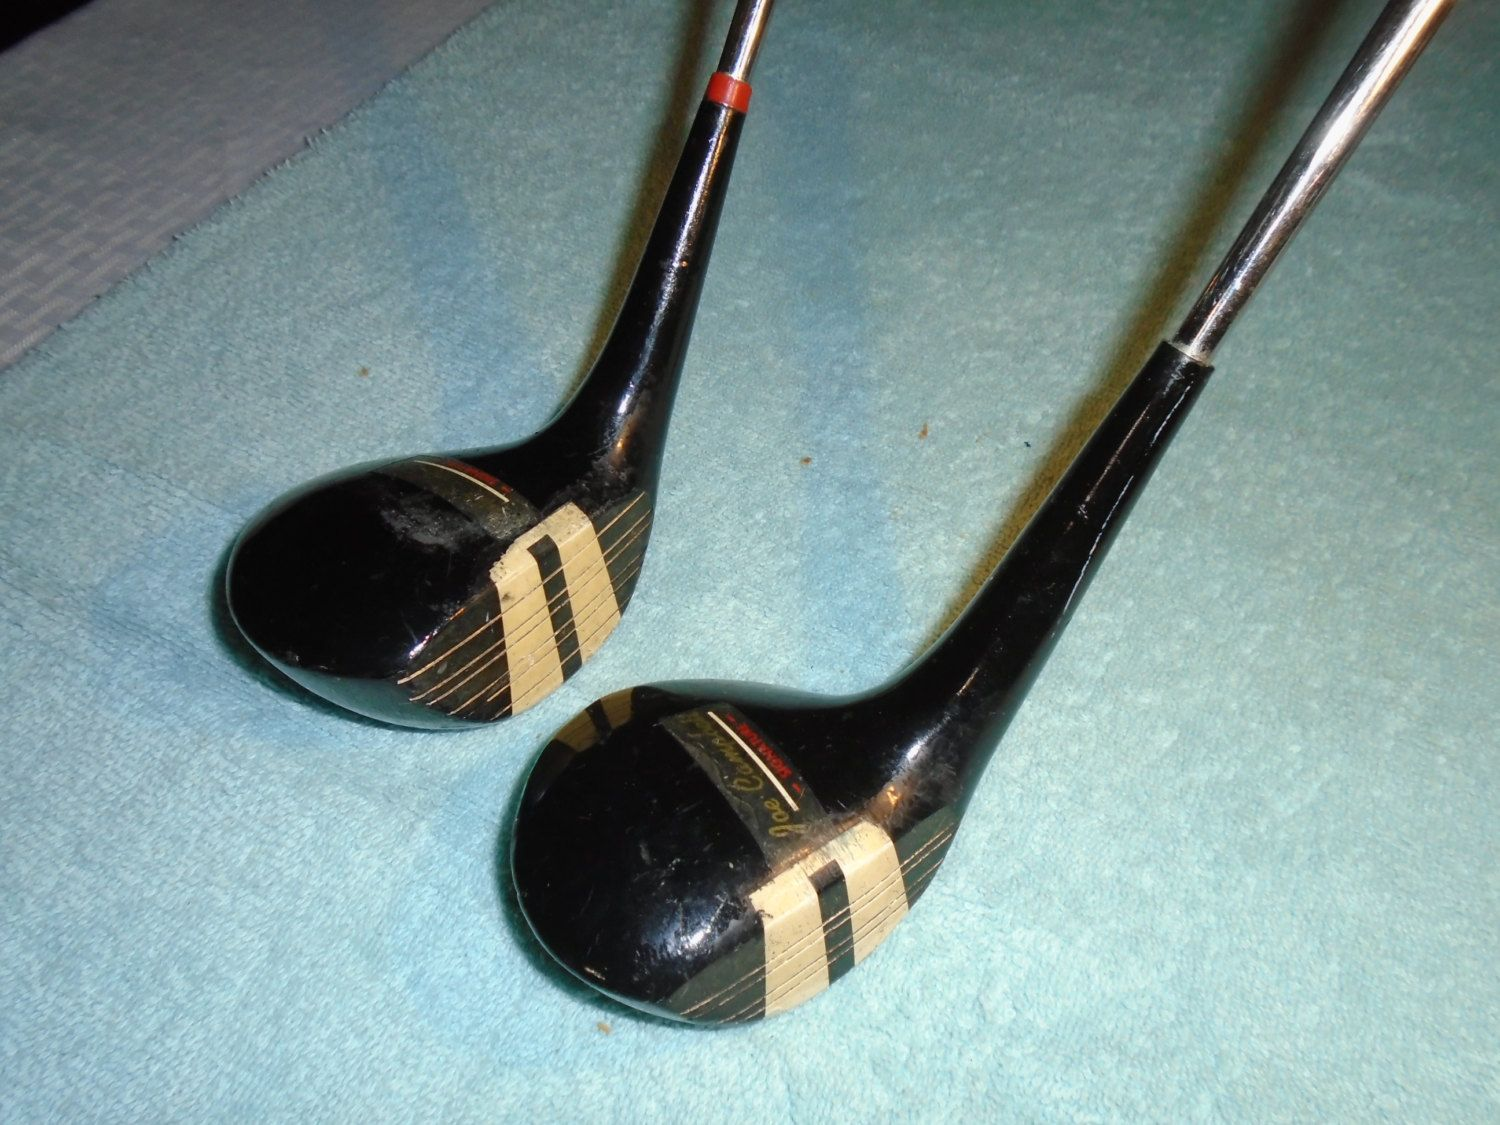 Old Kroydon 1 And 3 Woods Golf Clubs Golf Clubs Driver Golf Club 3 Wood Golf Club Sports Equipment Woods Golf Golf Clubs Golf